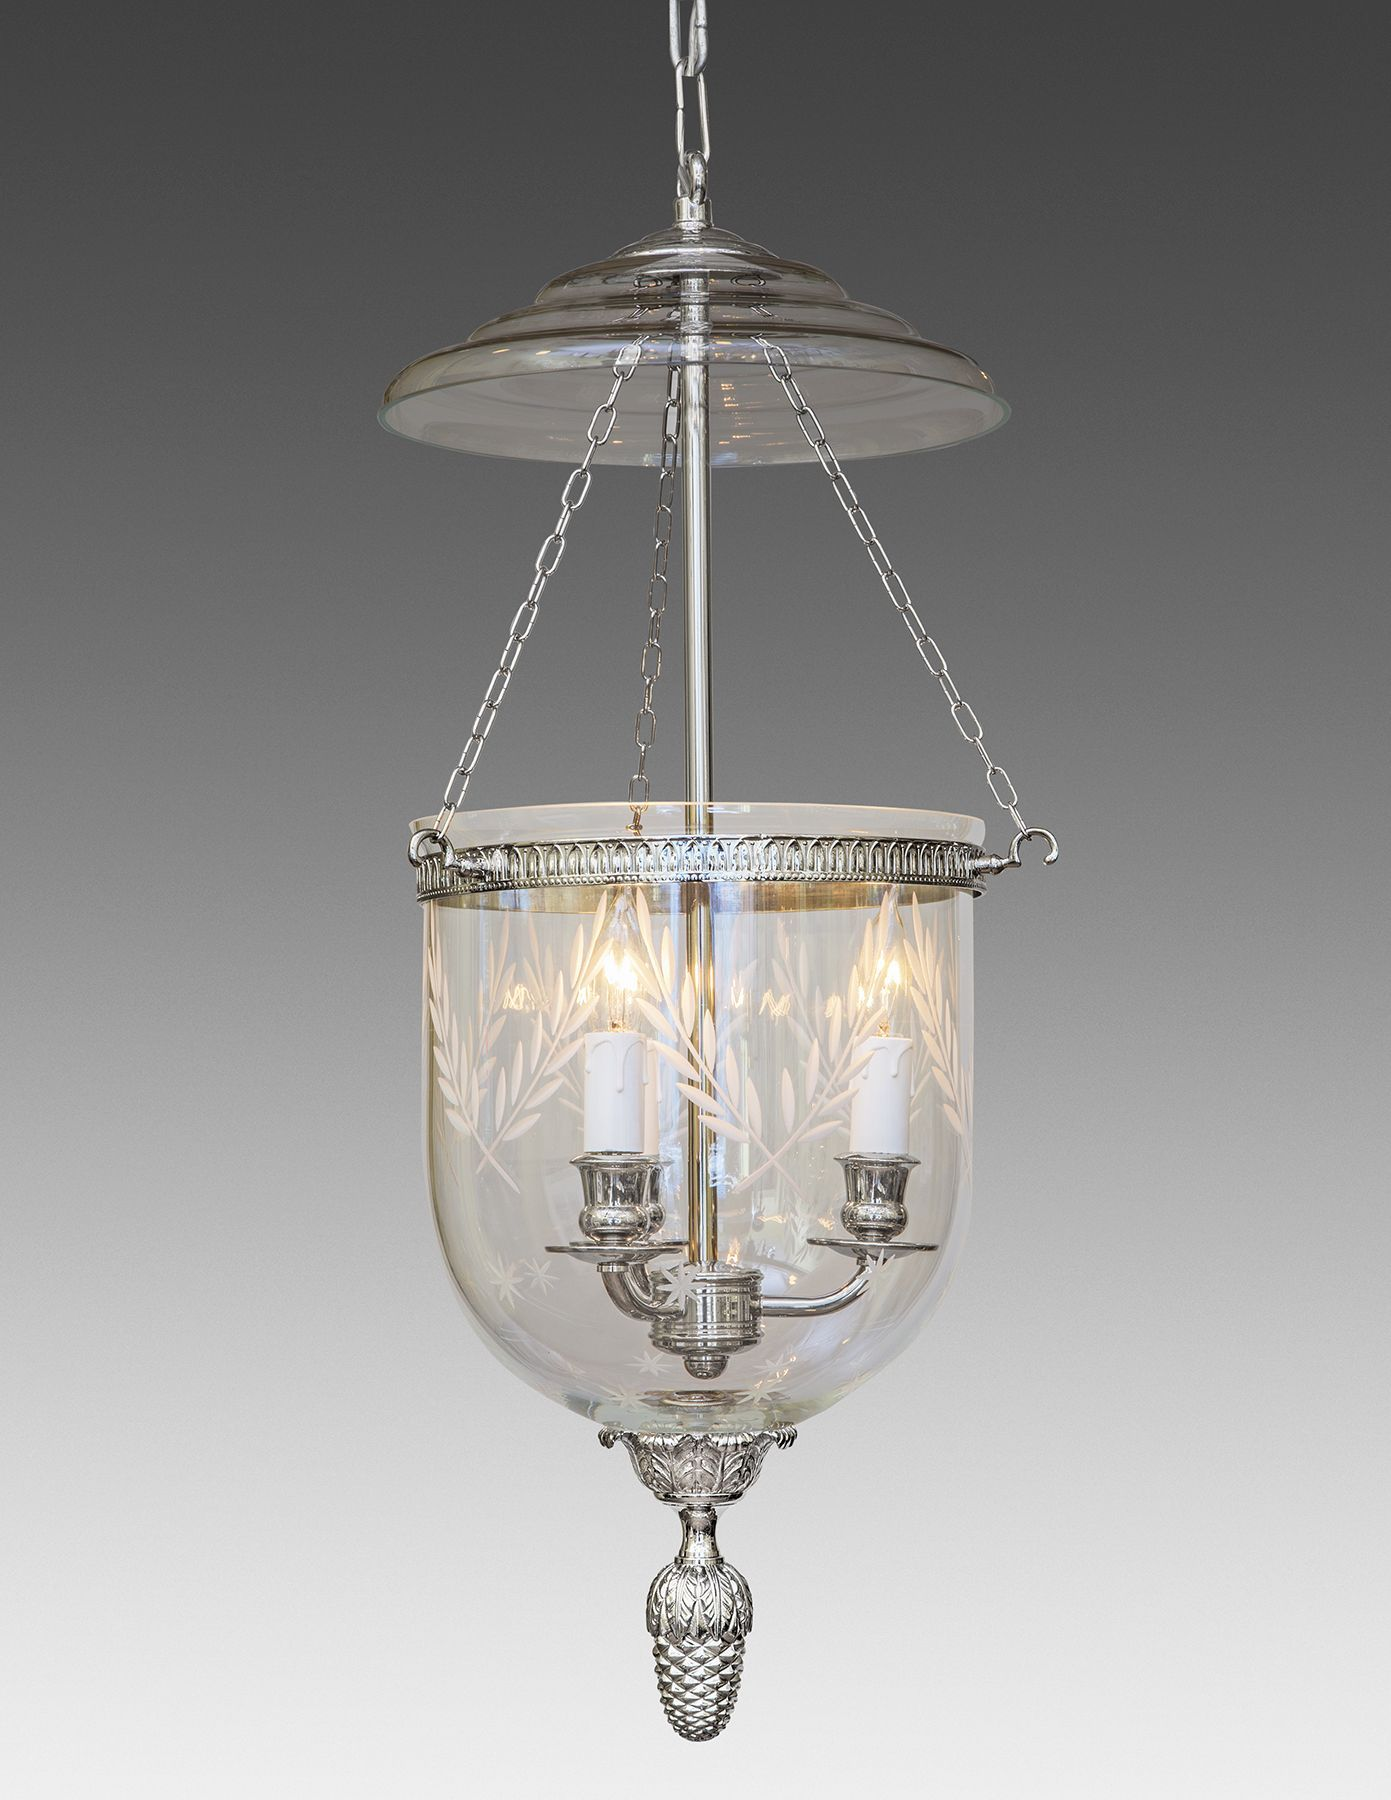 The Federalist Designs Bell Jar Lantern Cast Brass And Glass Etched Leaves Stars Decorated Three Light